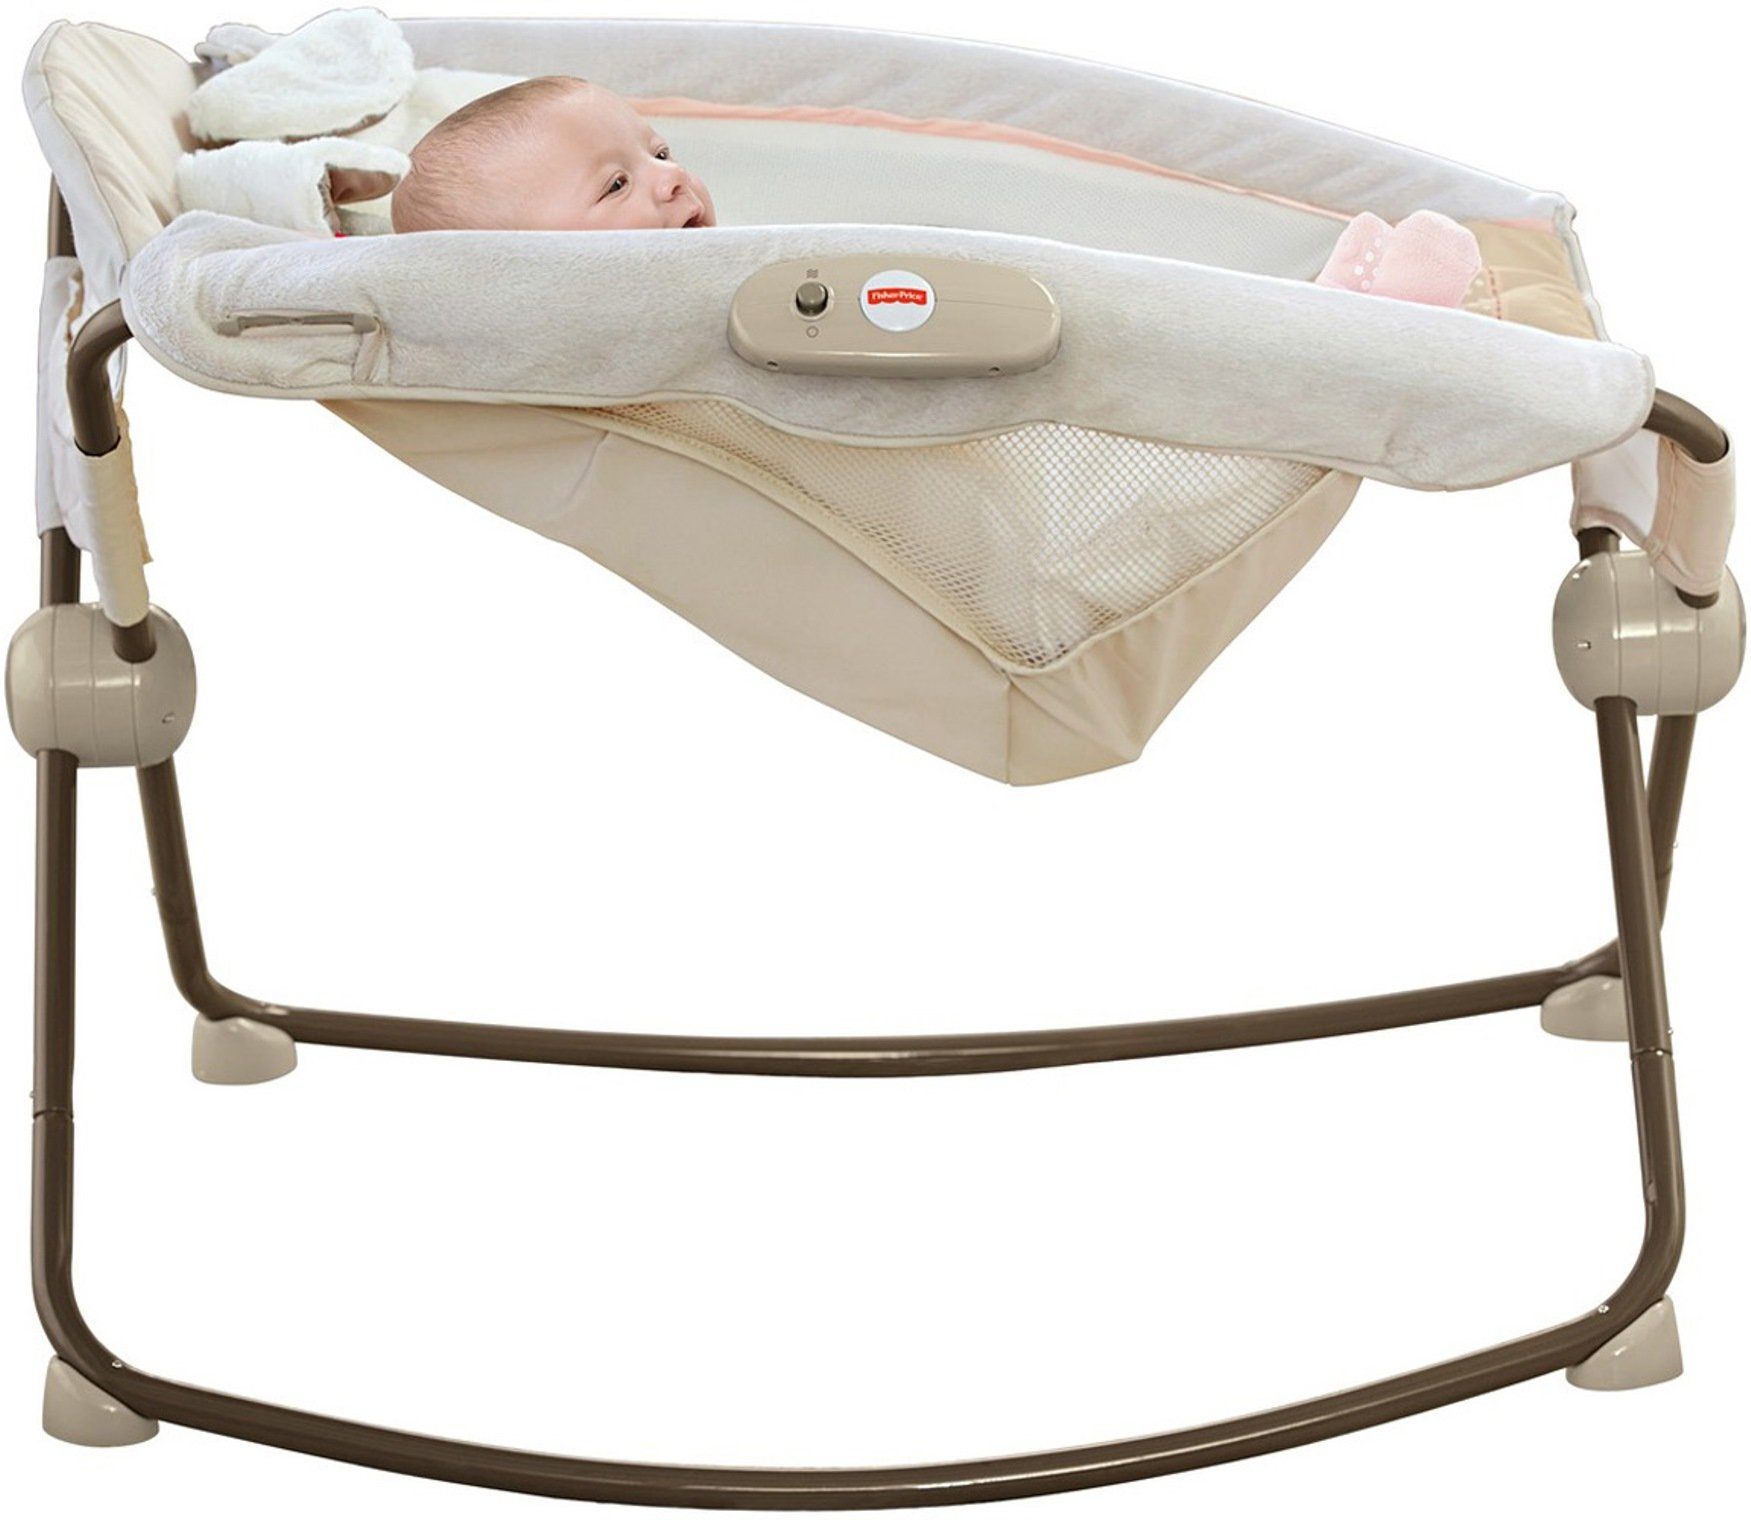 ec36da17f Amazon.com   Fisher-Price Deluxe Rock  n Play Sleeper